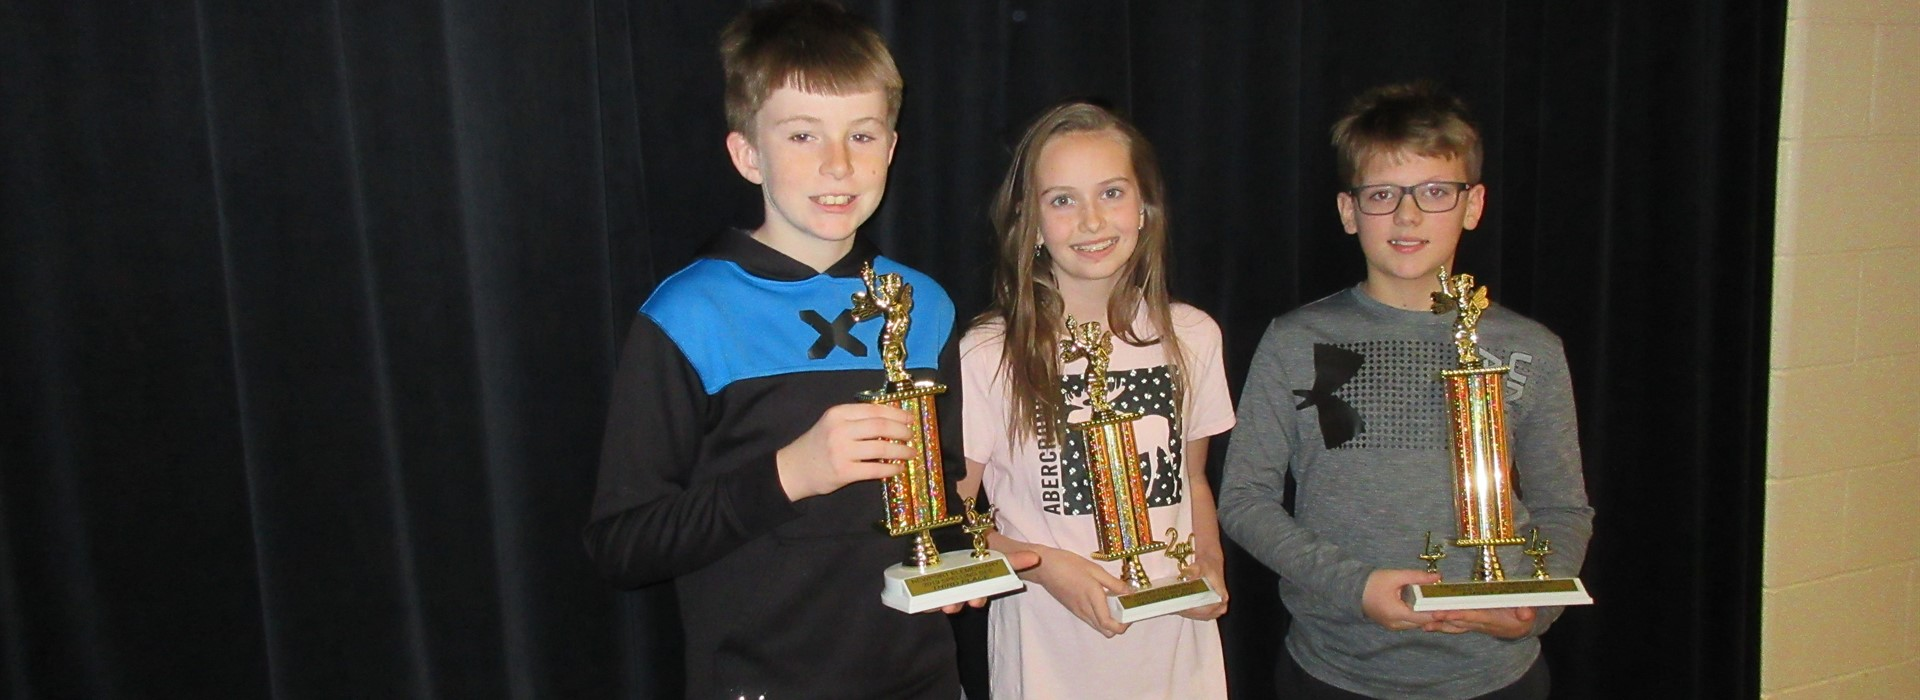 Newport Spelling Bee Winners 1st Peyton Russell (5th), 2nd Cali Swartz (6th), 3rd True King (6th)